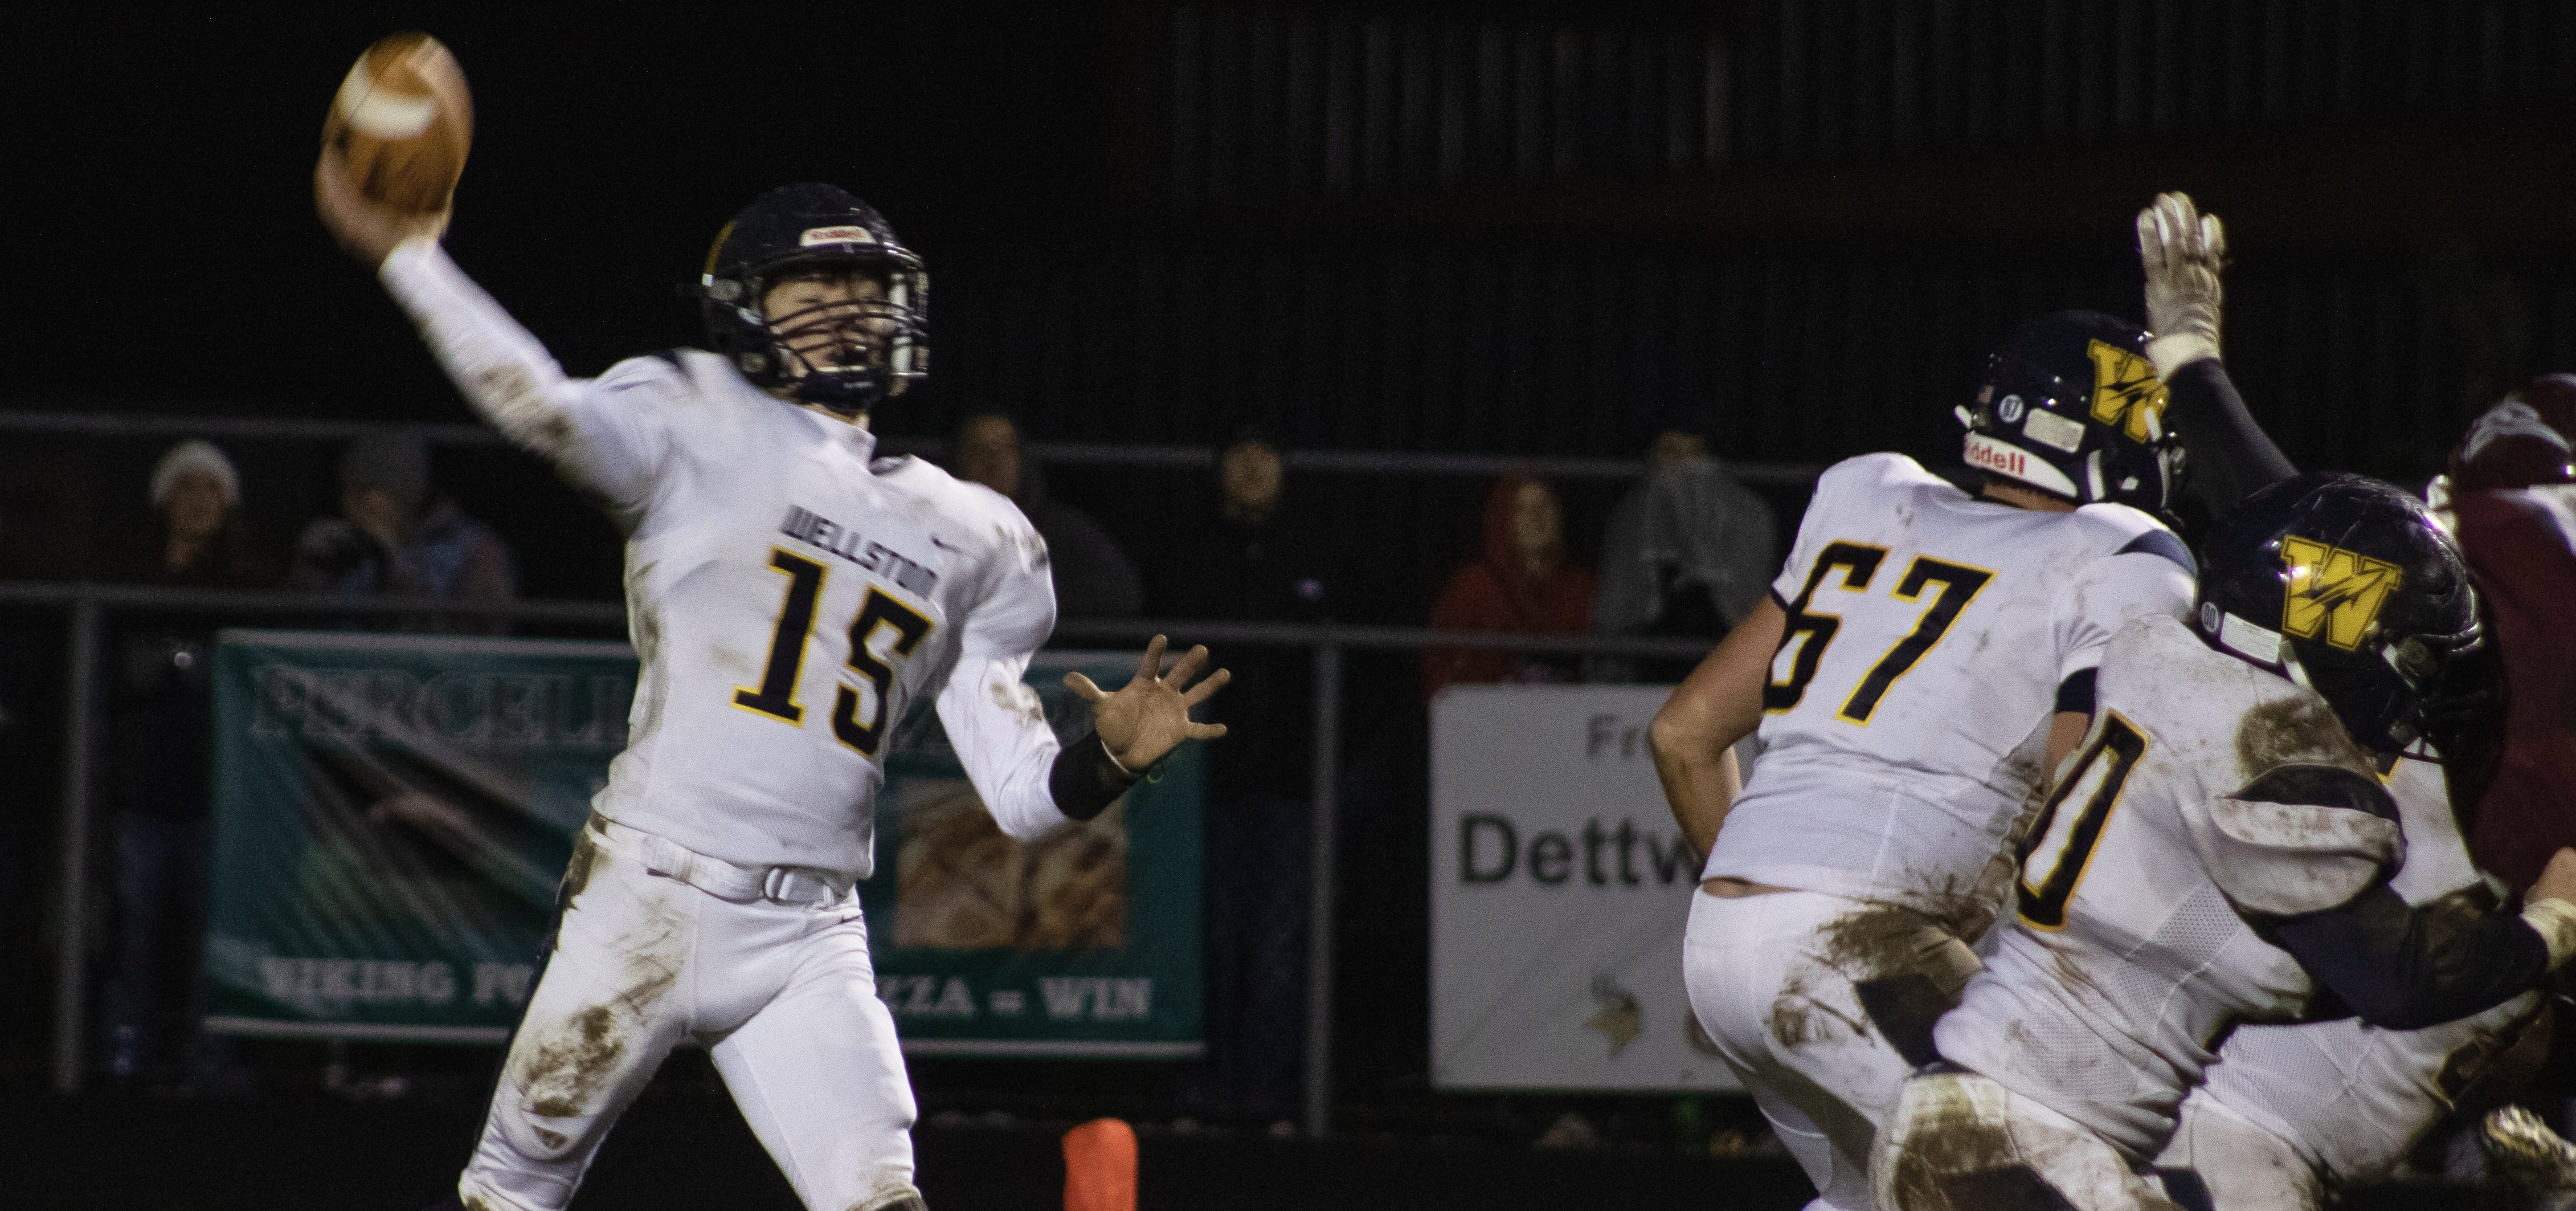 Wellston Golden Rockets quarterback R.J. Kemp throws down field during a week 10 game against Vinton County on November 11, 2019.